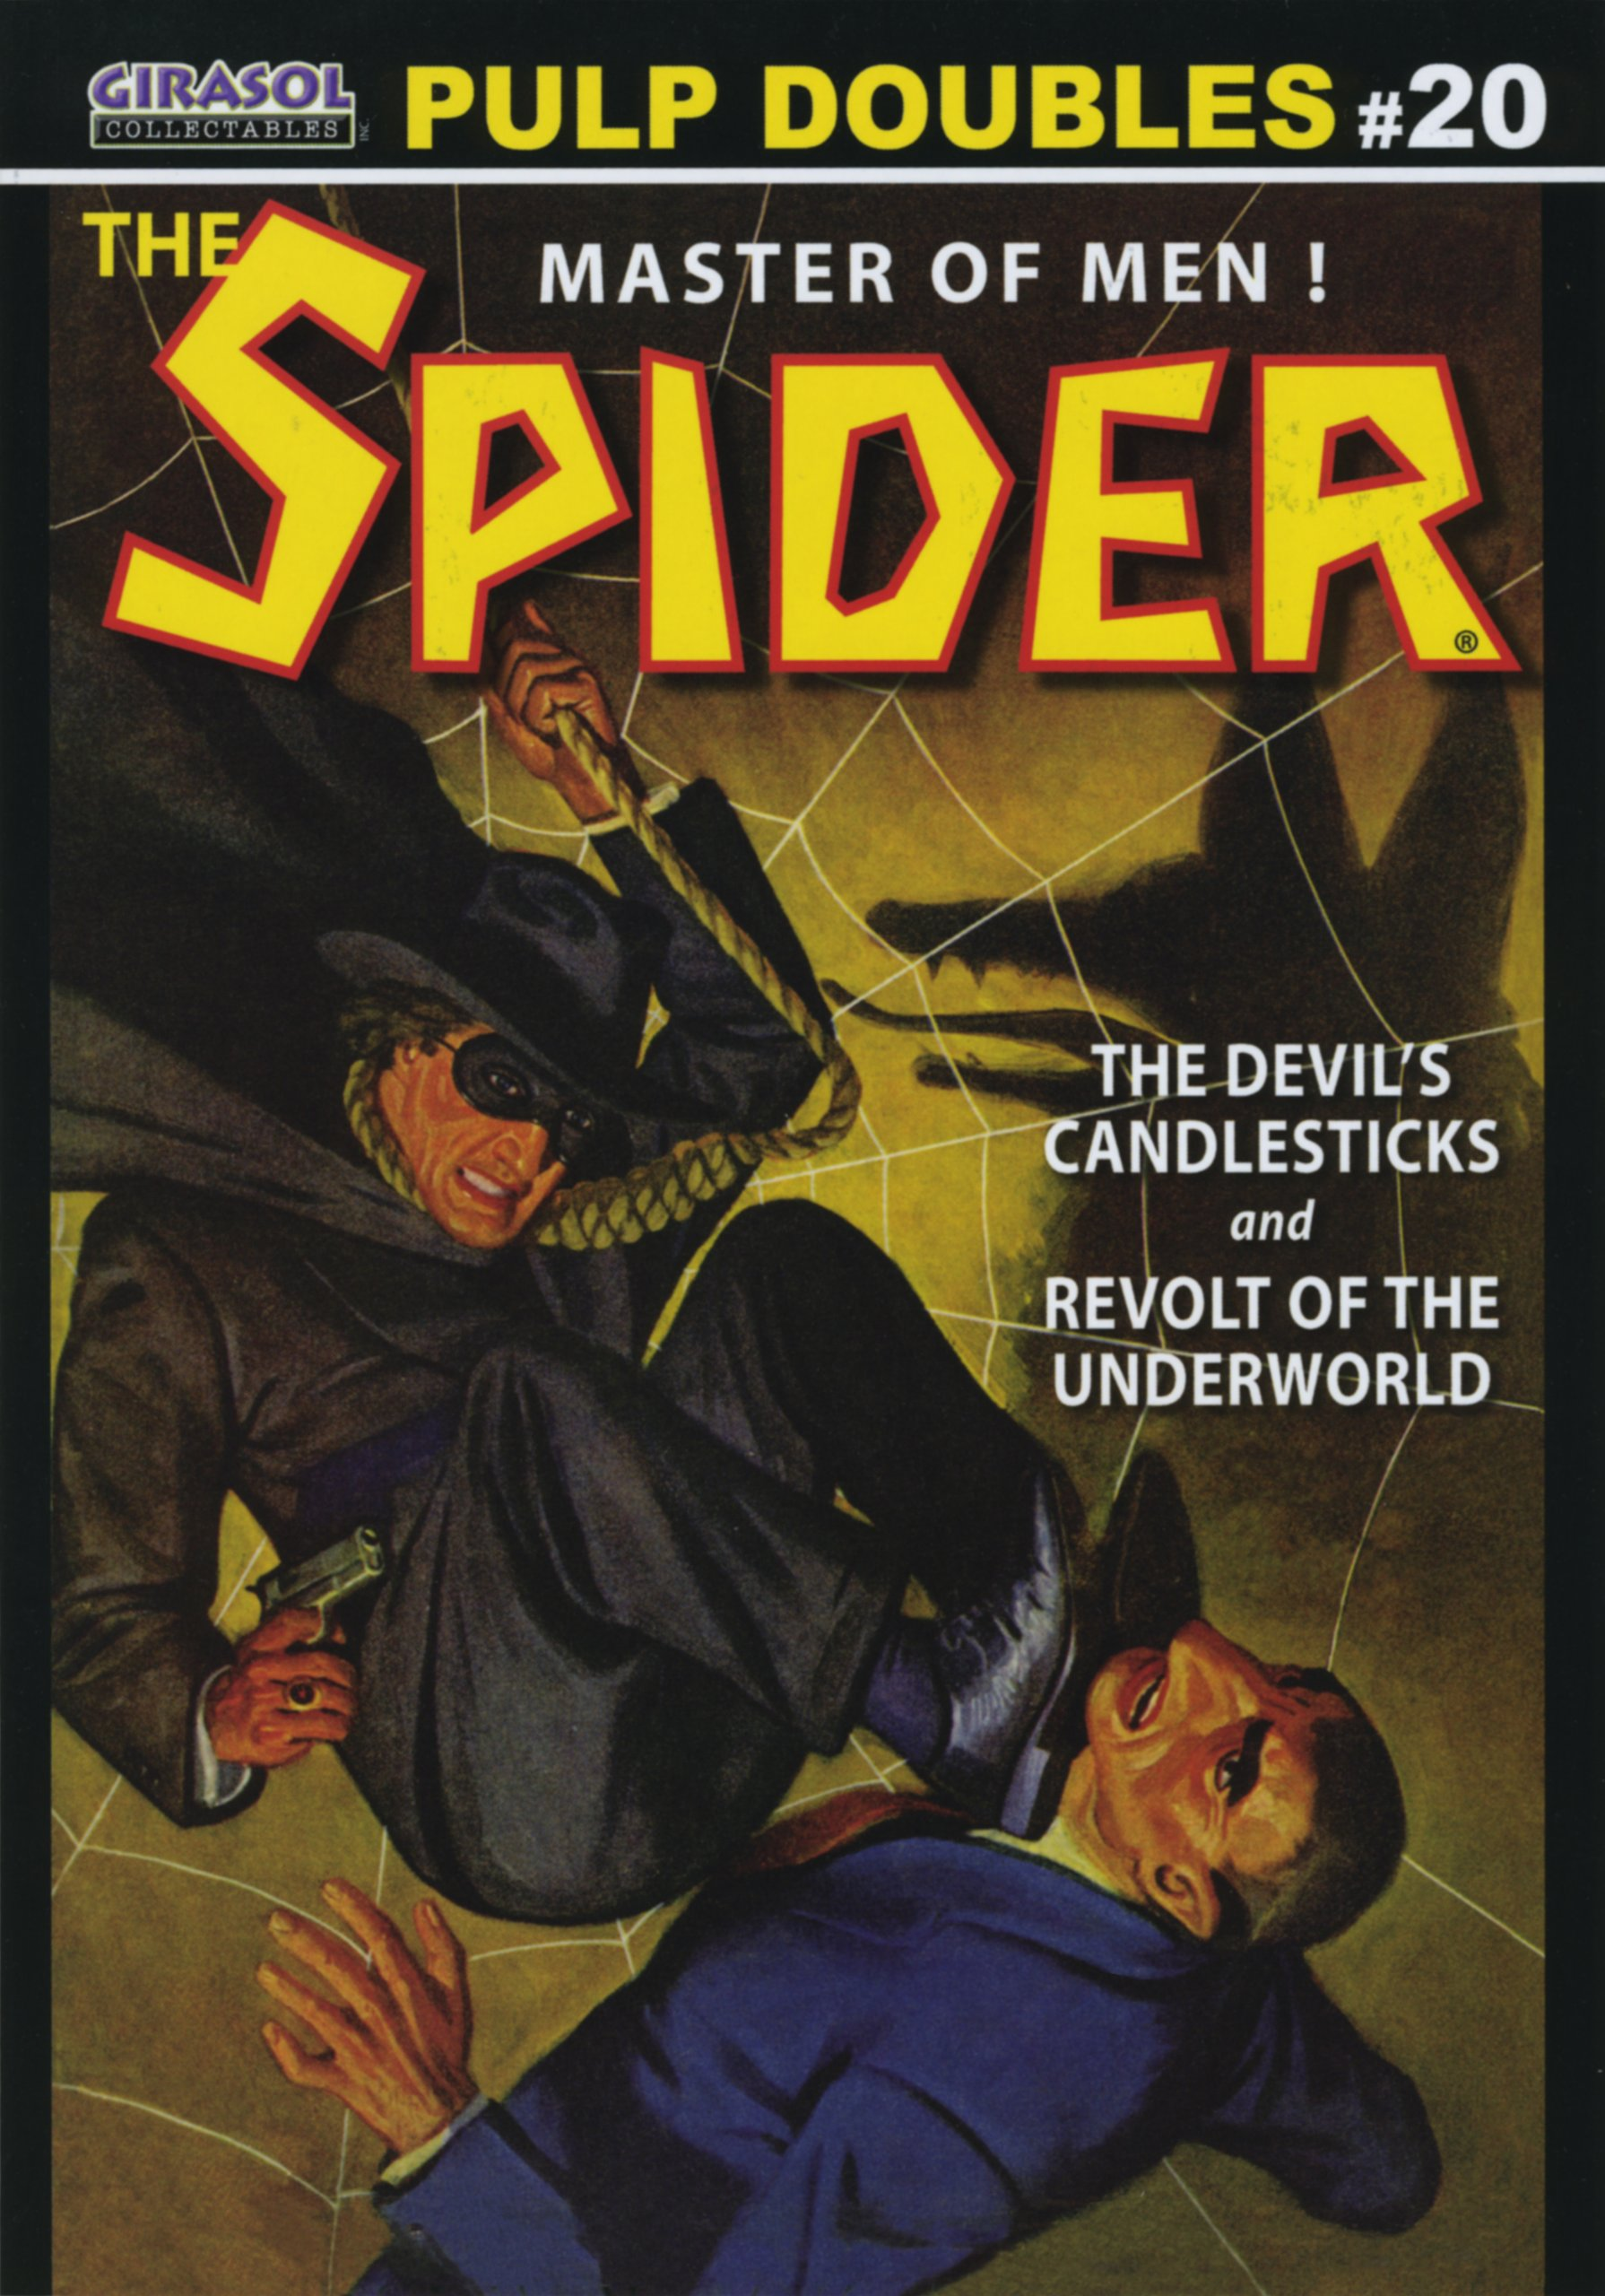 "Read Online The Spider Double-Novel Pulp Reprints #20: ""The Devil's Candlesticks"" & ""Revolt of the Underworld"" ebook"